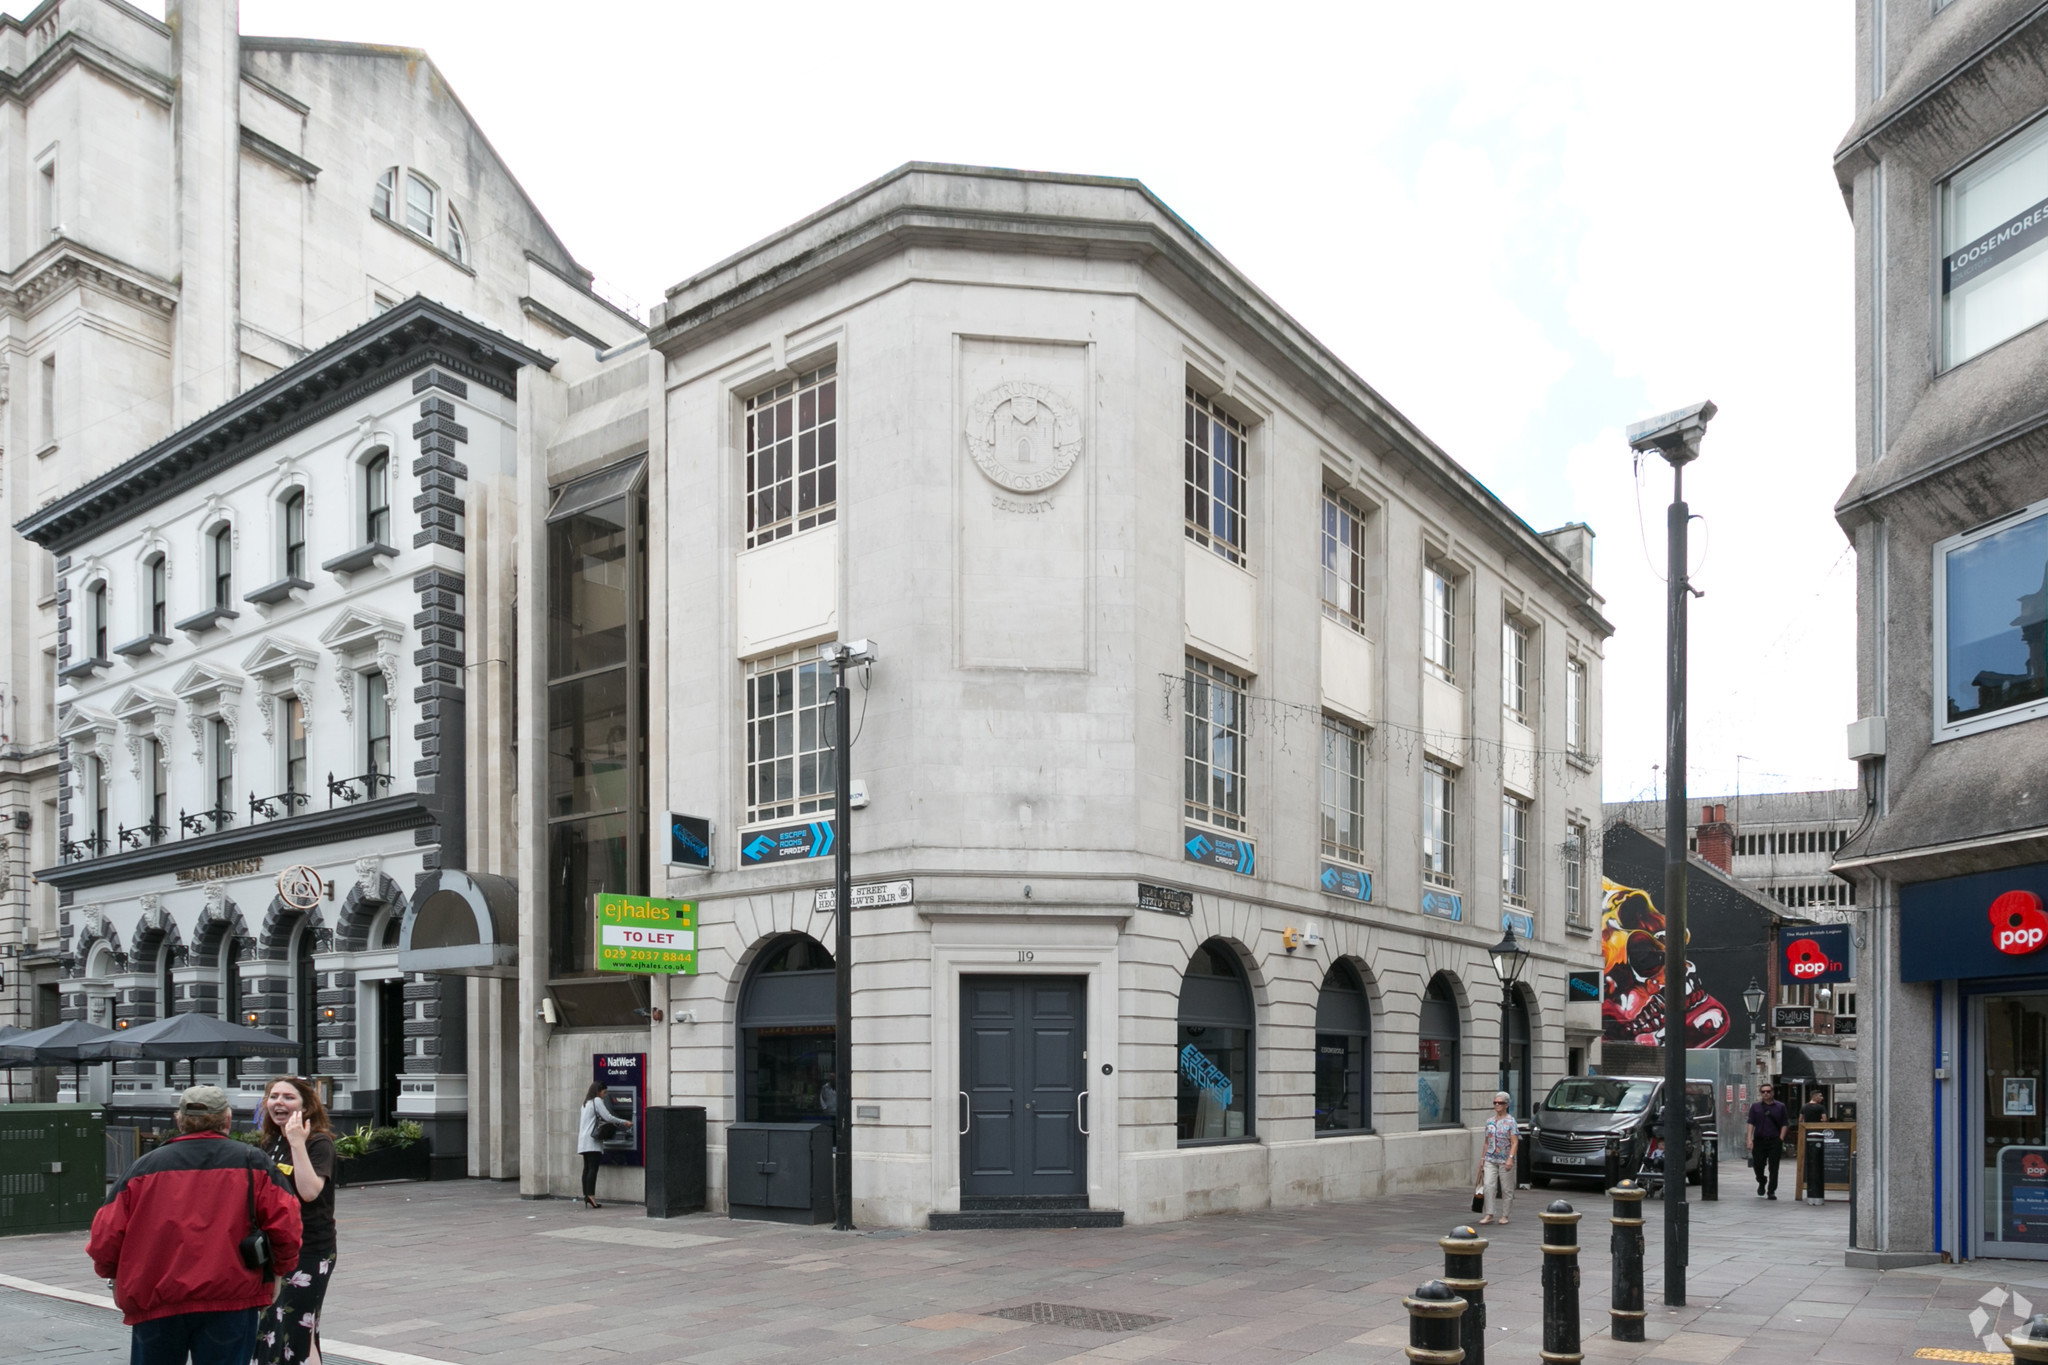 Commercial property area guide: Cardiff, Wales